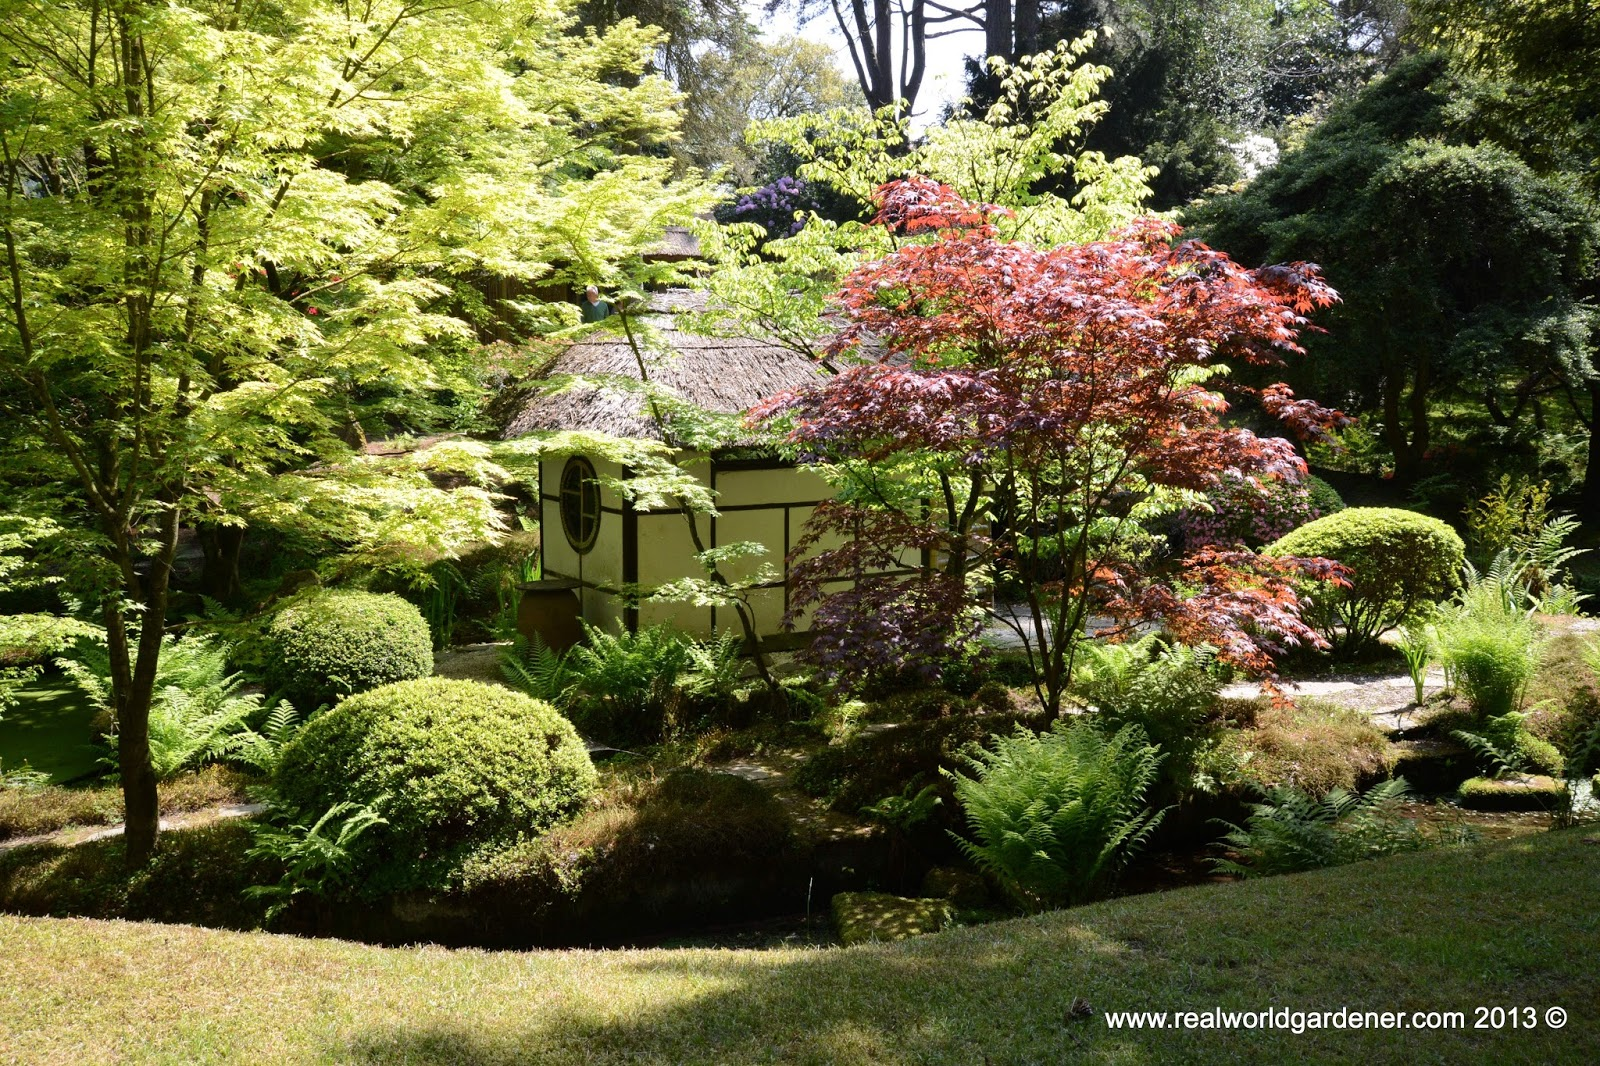 Real world gardener inspirational japanese gardens in for Garden design podcast